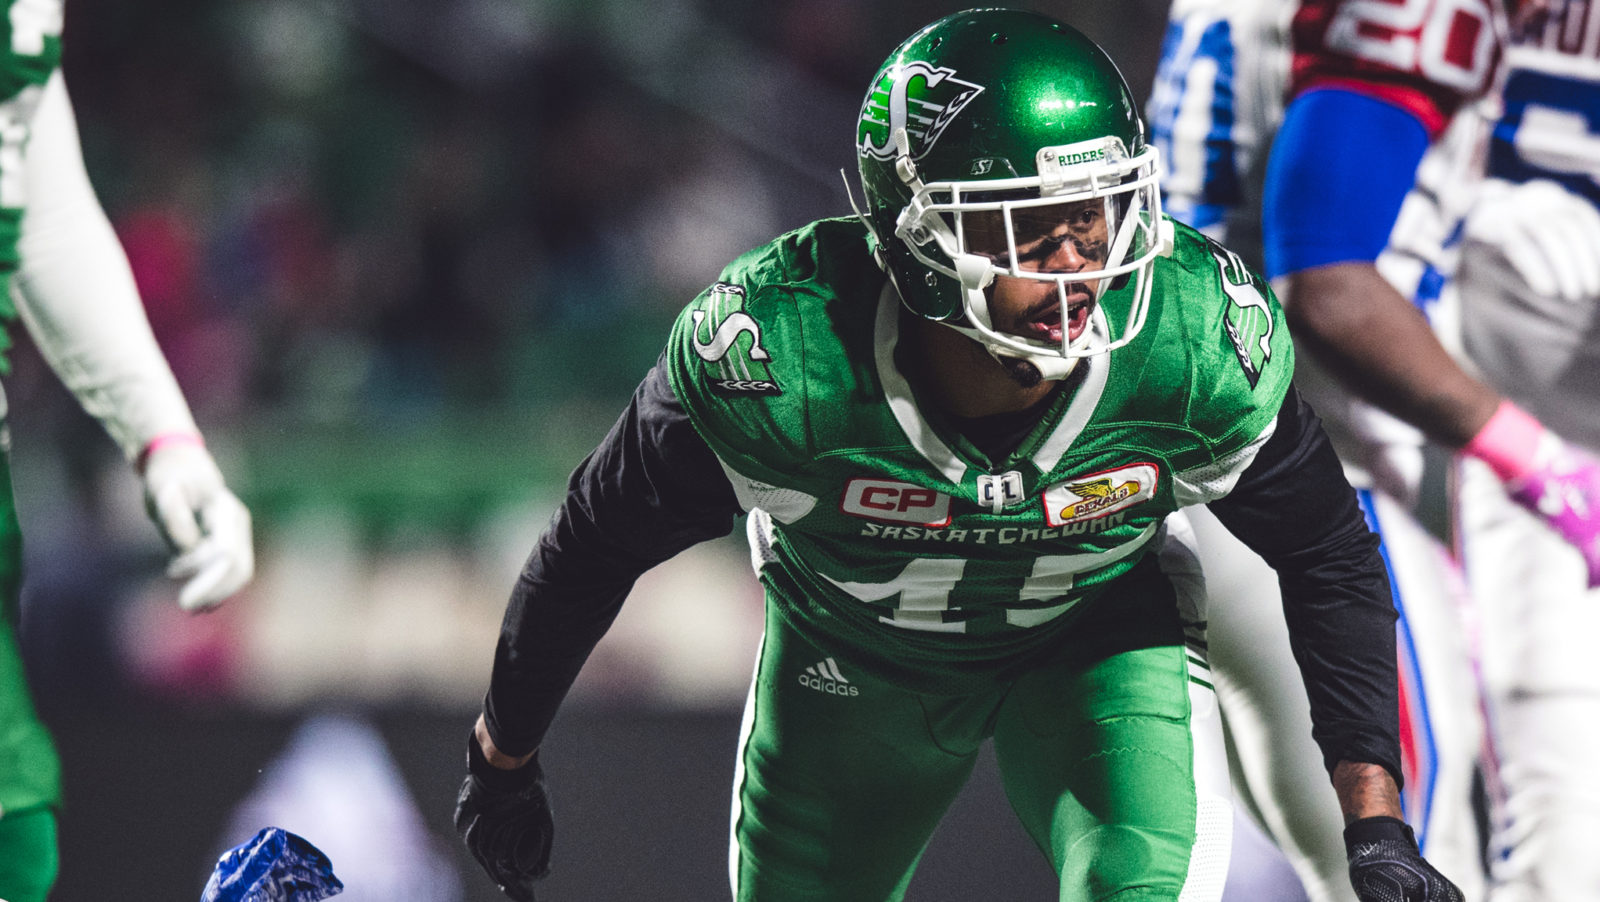 Saskatchewan Roughriders launch Kacy Rodgers II